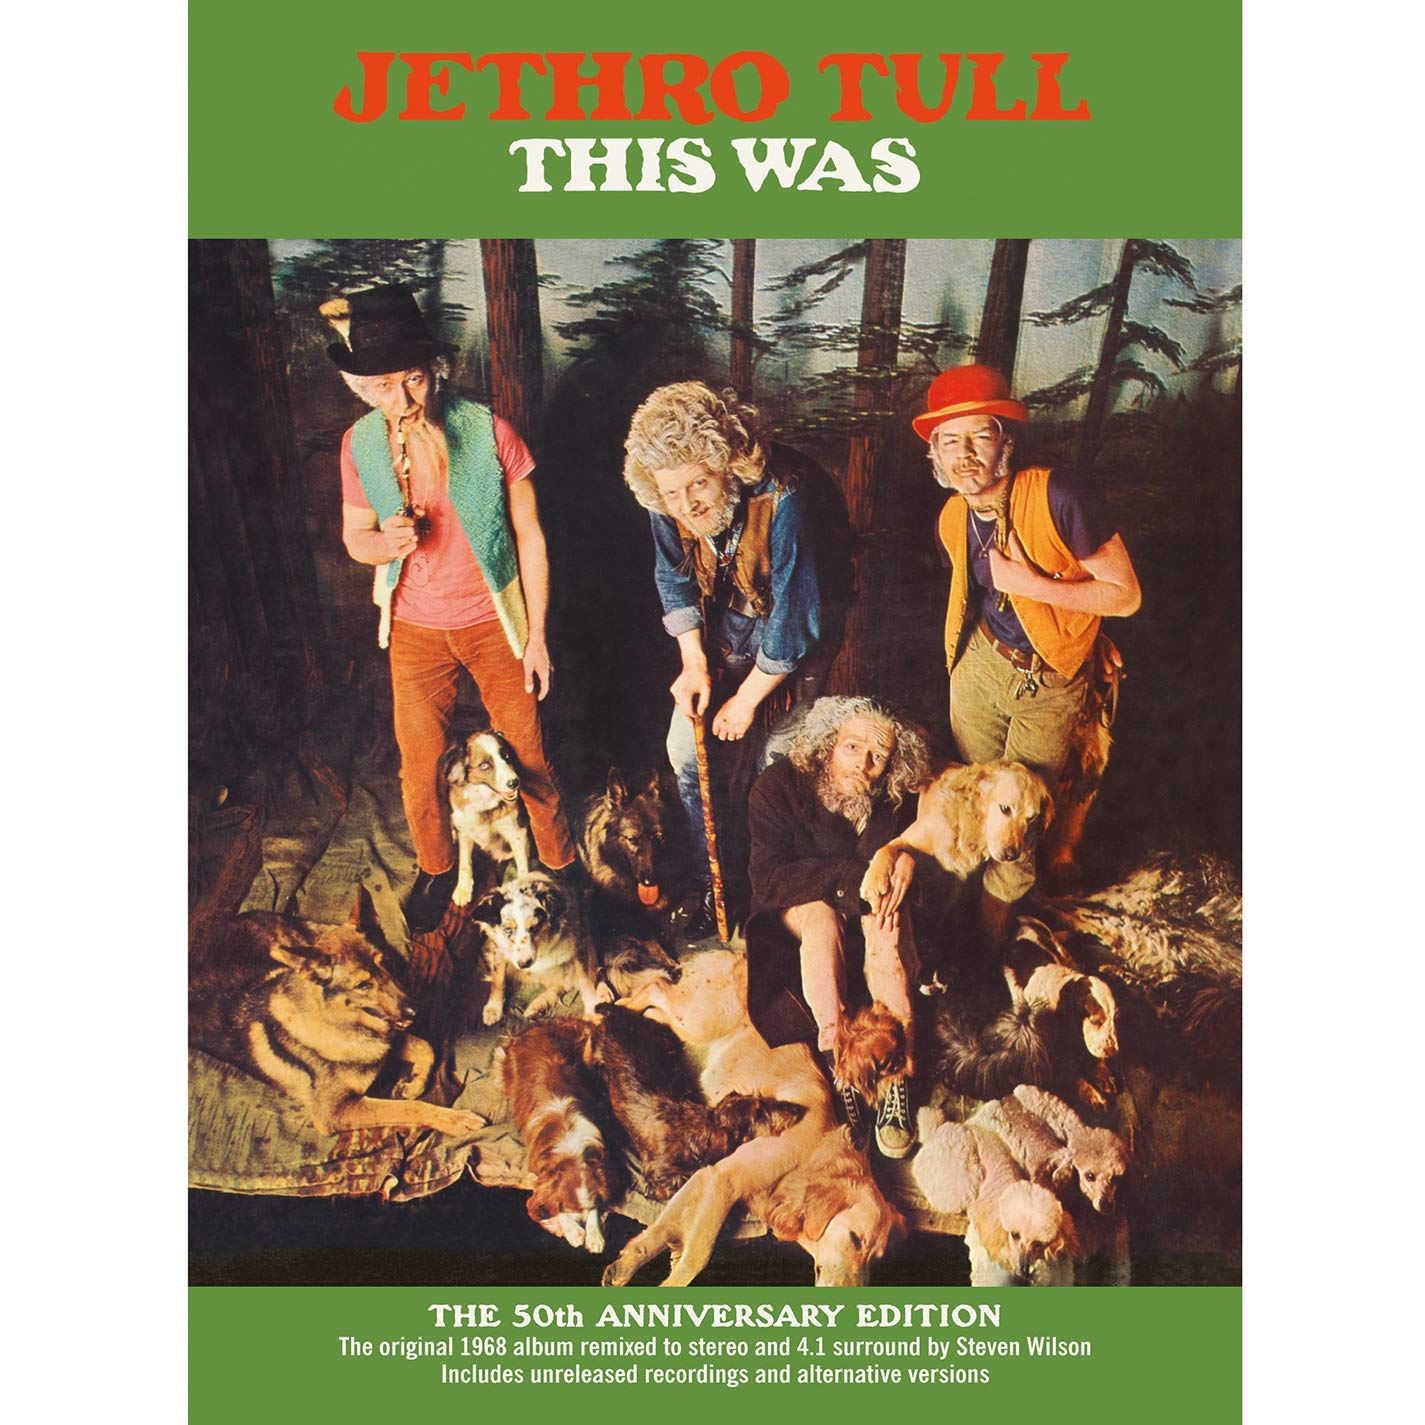 Jethro Tull \'This Was\' 50th Anniversary Edition Due | Best Classic Bands